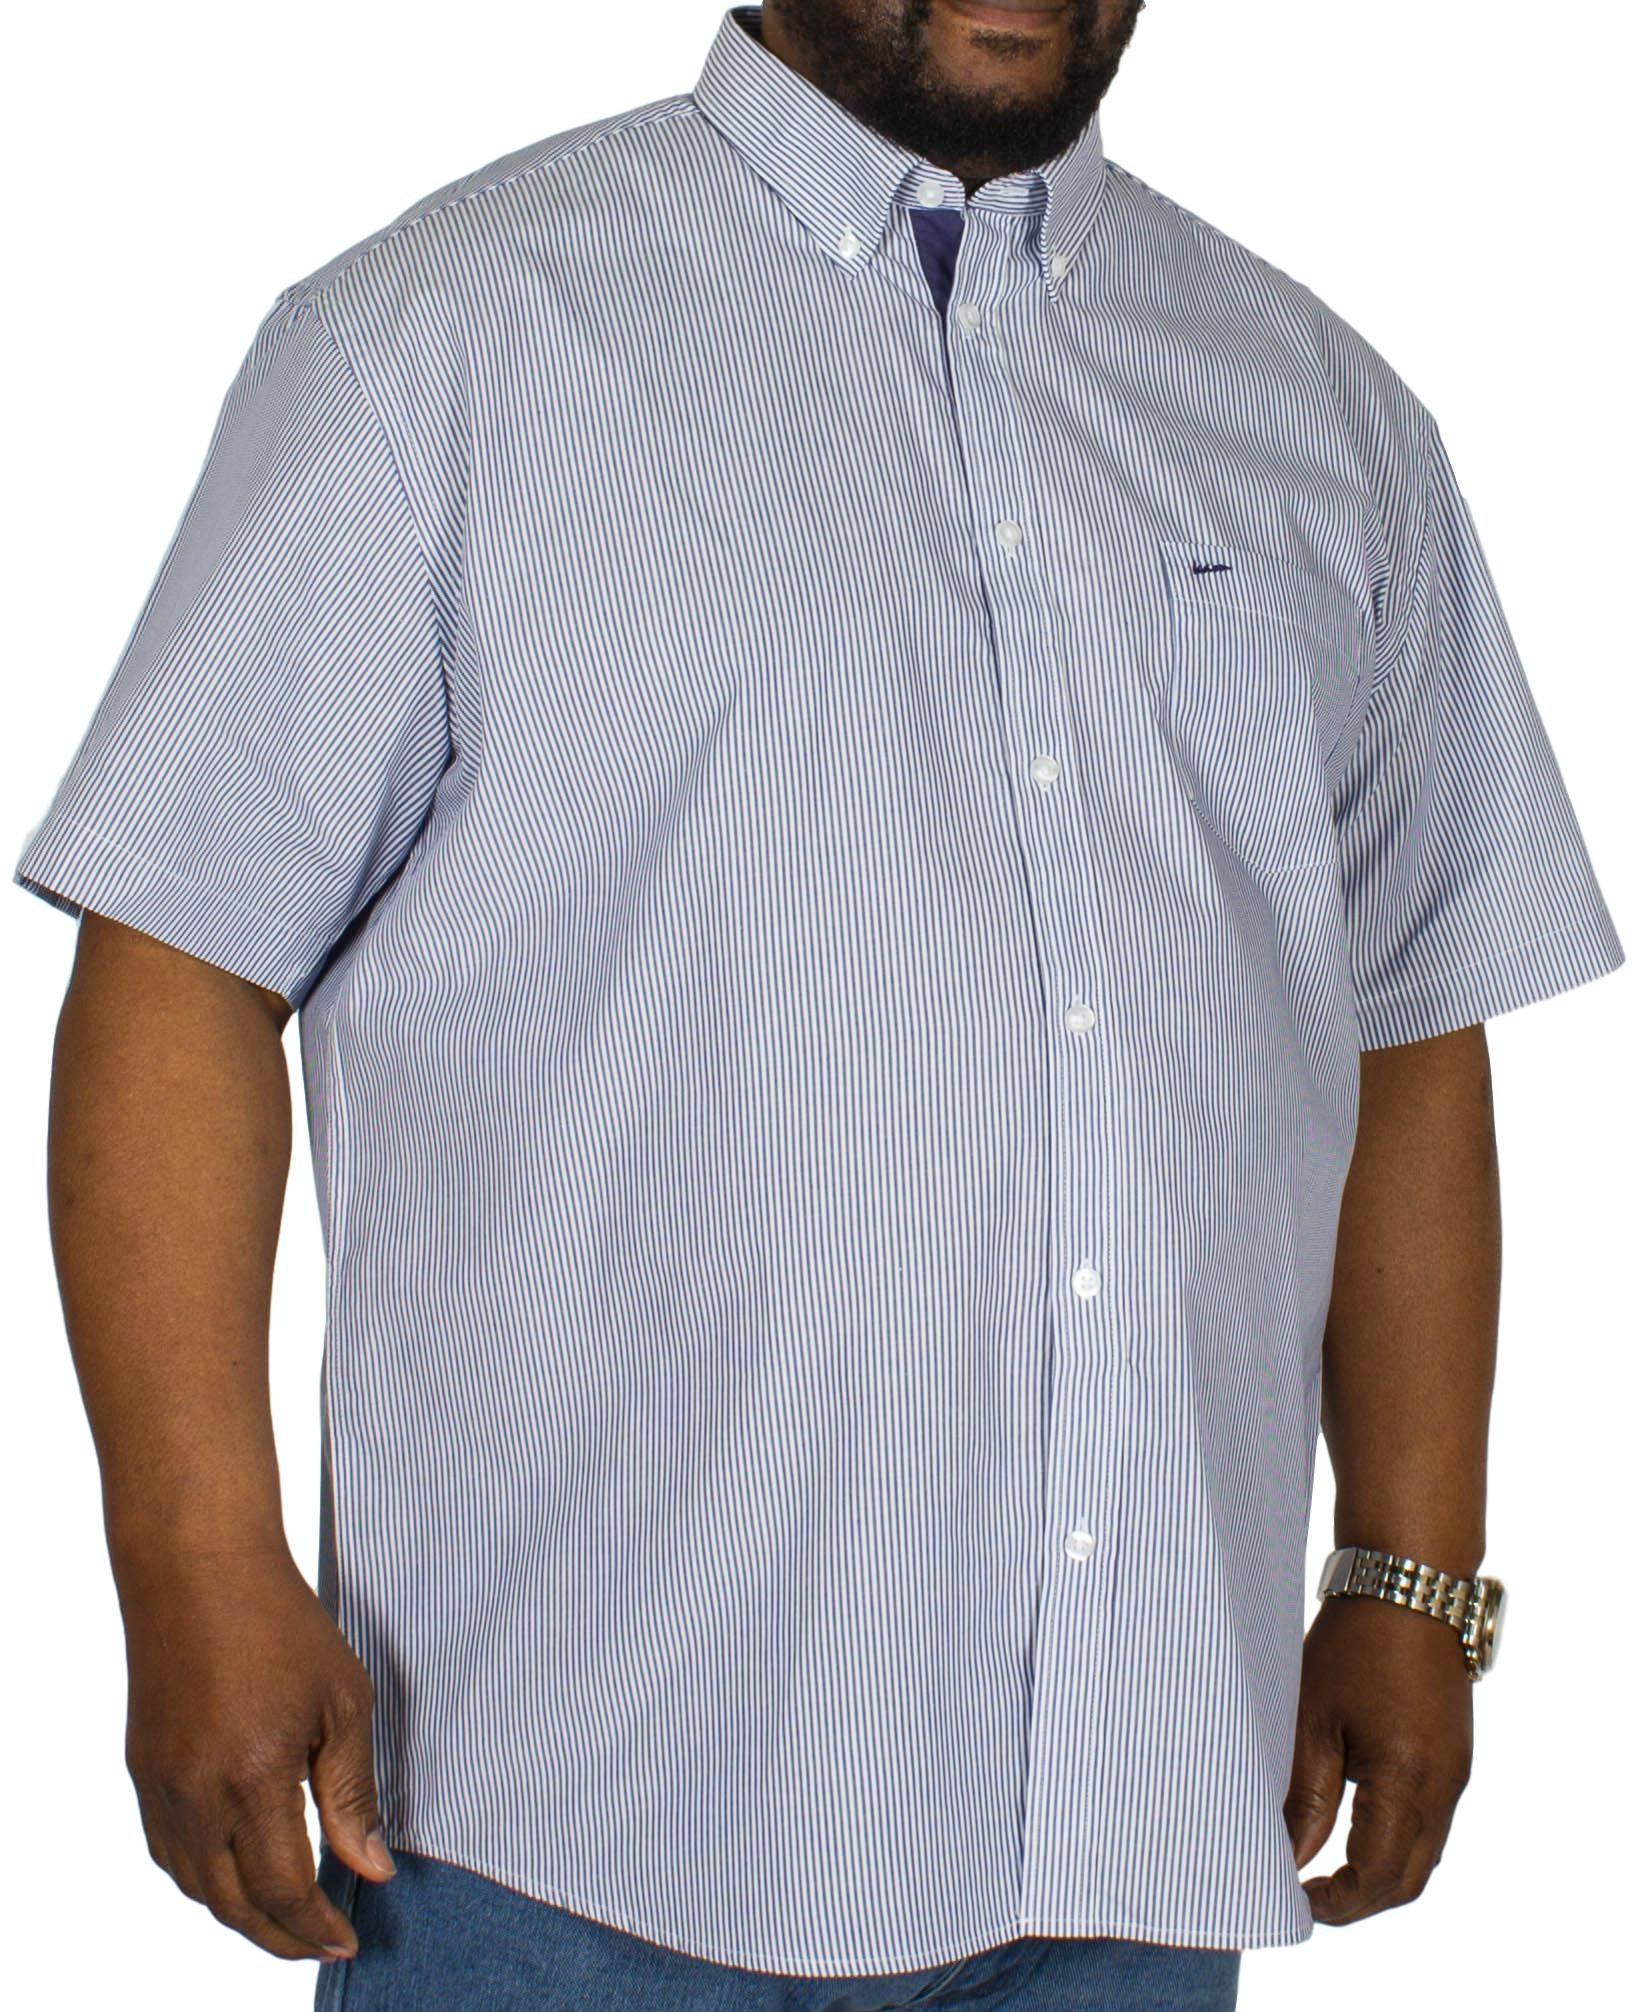 KAM Stripe Short Sleeve Shirt Navy